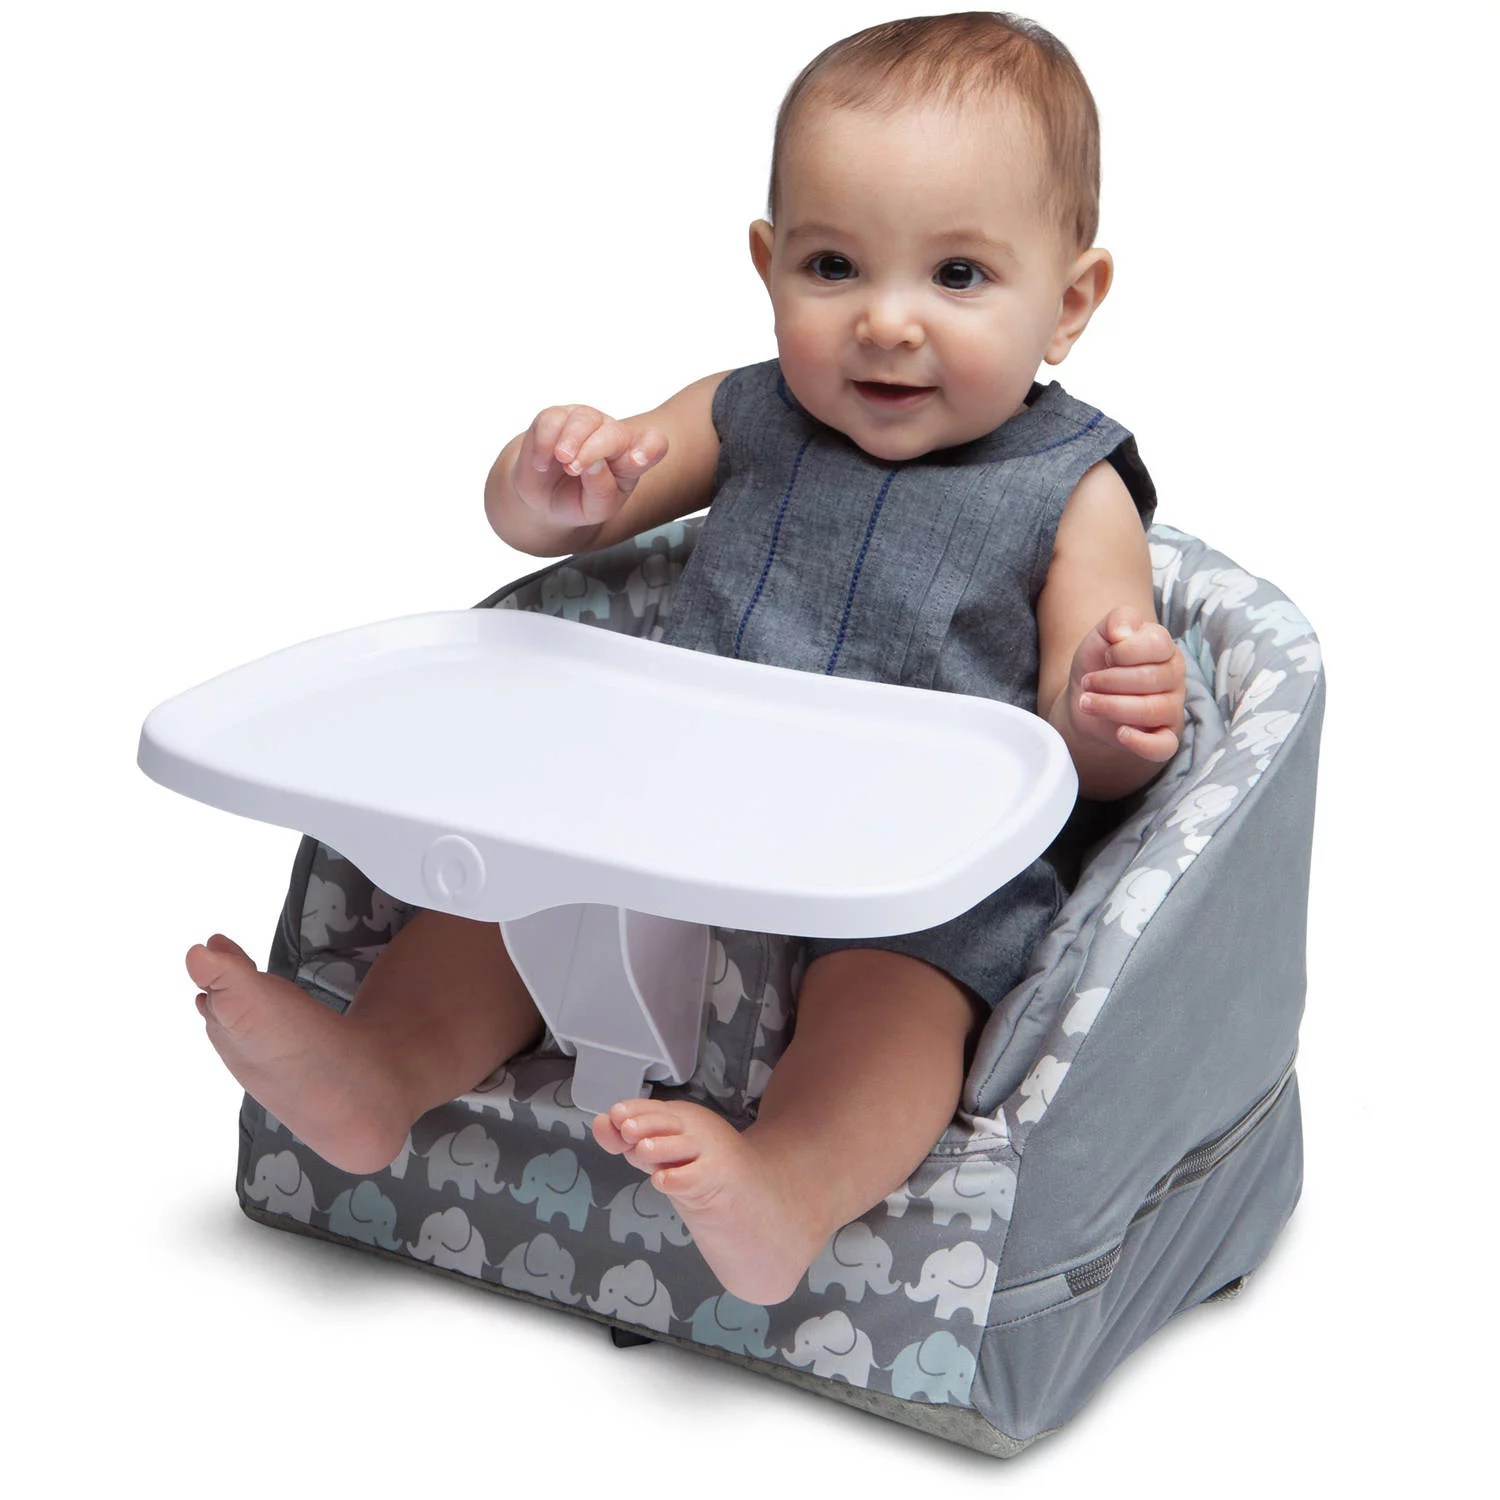 boppy baby chair walgreens shower booster seat elephant walk gray walmart com